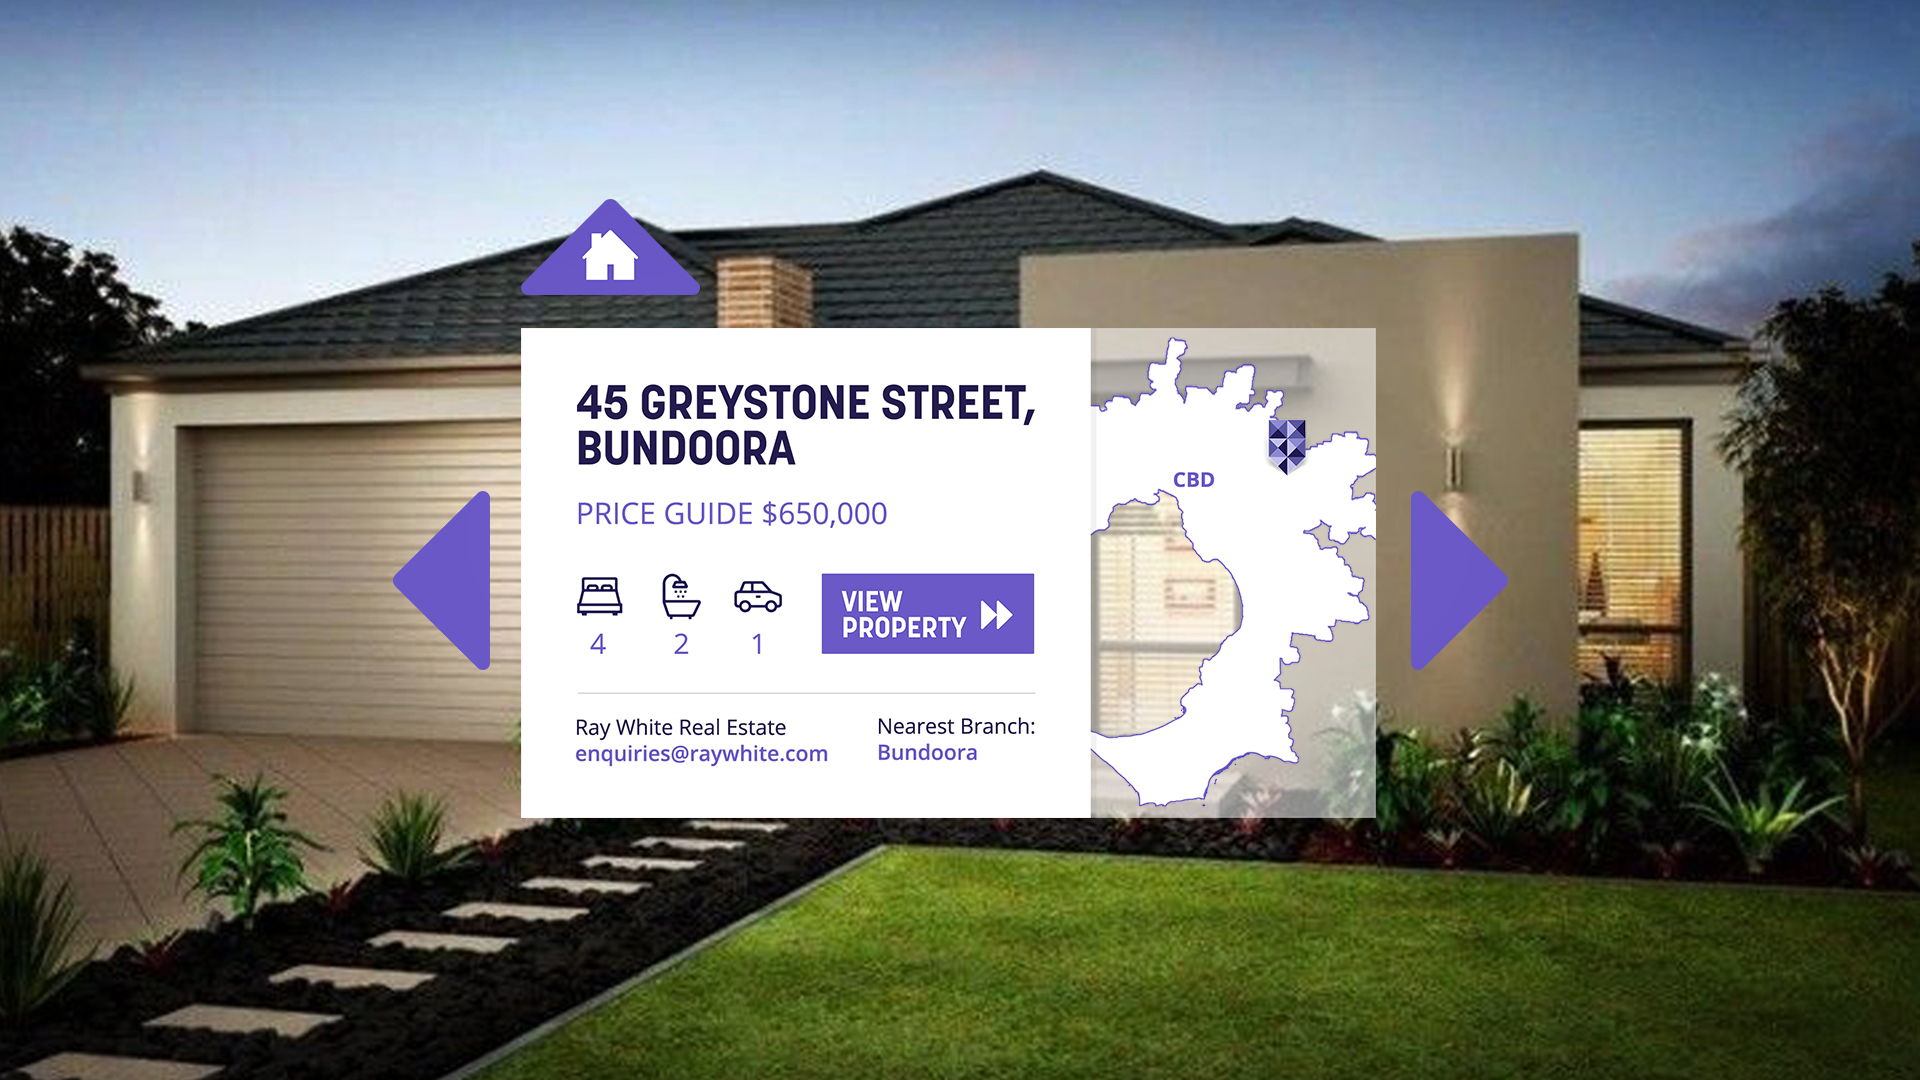 Bank of Melbourne VR Real Estate project with Domain